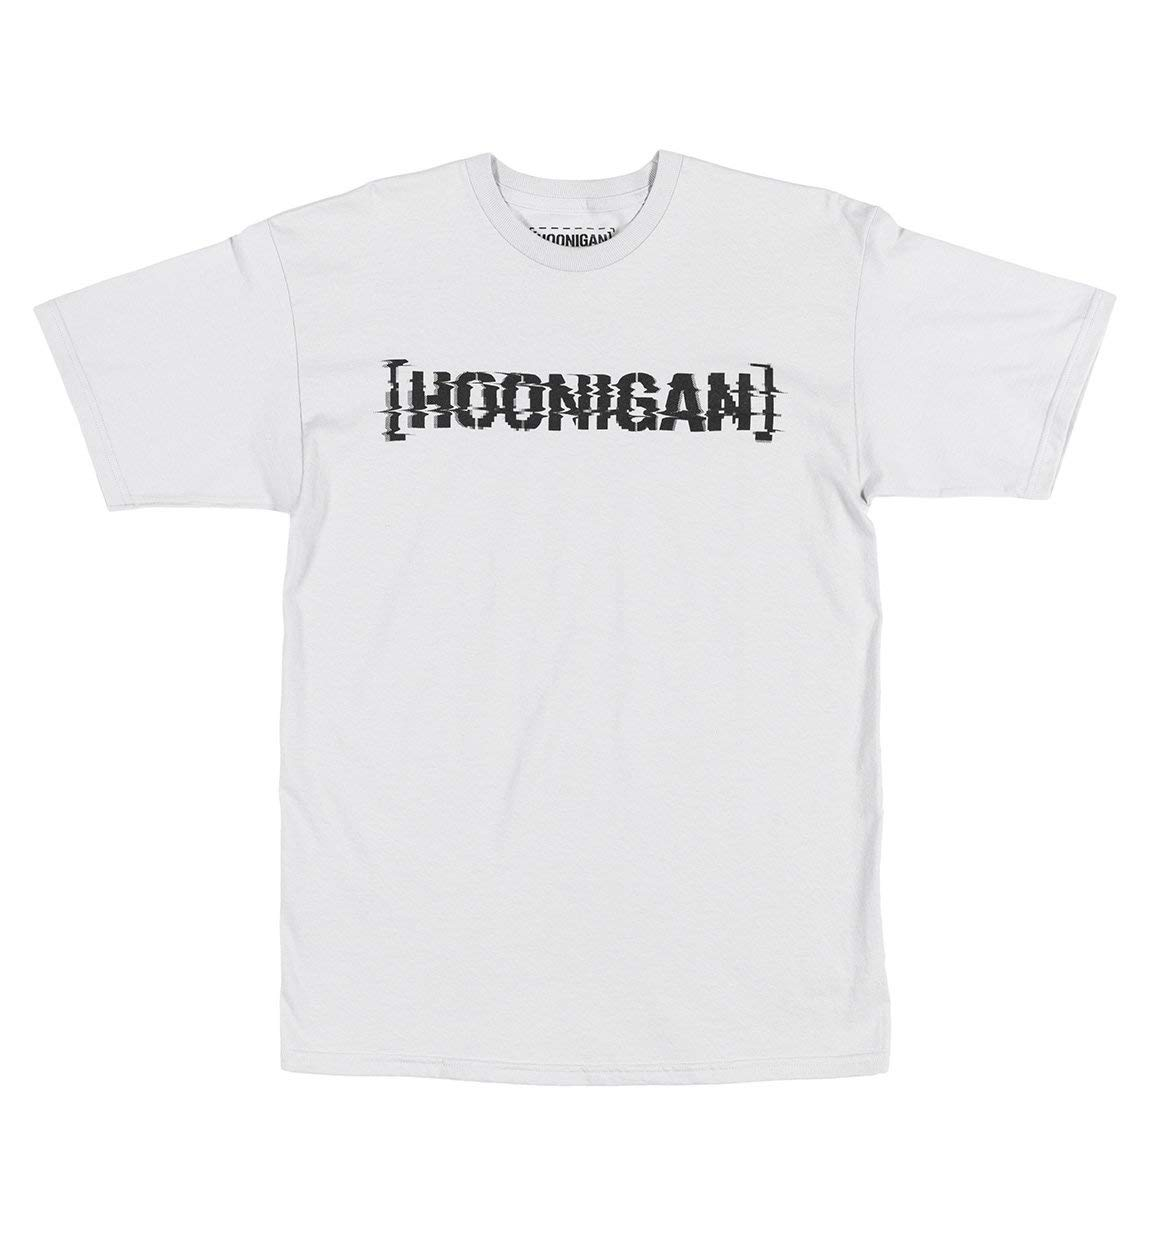 Hoonigan Glitch Bracket Short Sleeve Graphic T-Shirt - Best Cool Graphic Tee for Mechanics, Gear-Heads, Car Truck Motorcycle Enthusiasts, Drifting, Race-Car Sports Fans Gift for Him by Hoonigan (Image #1)